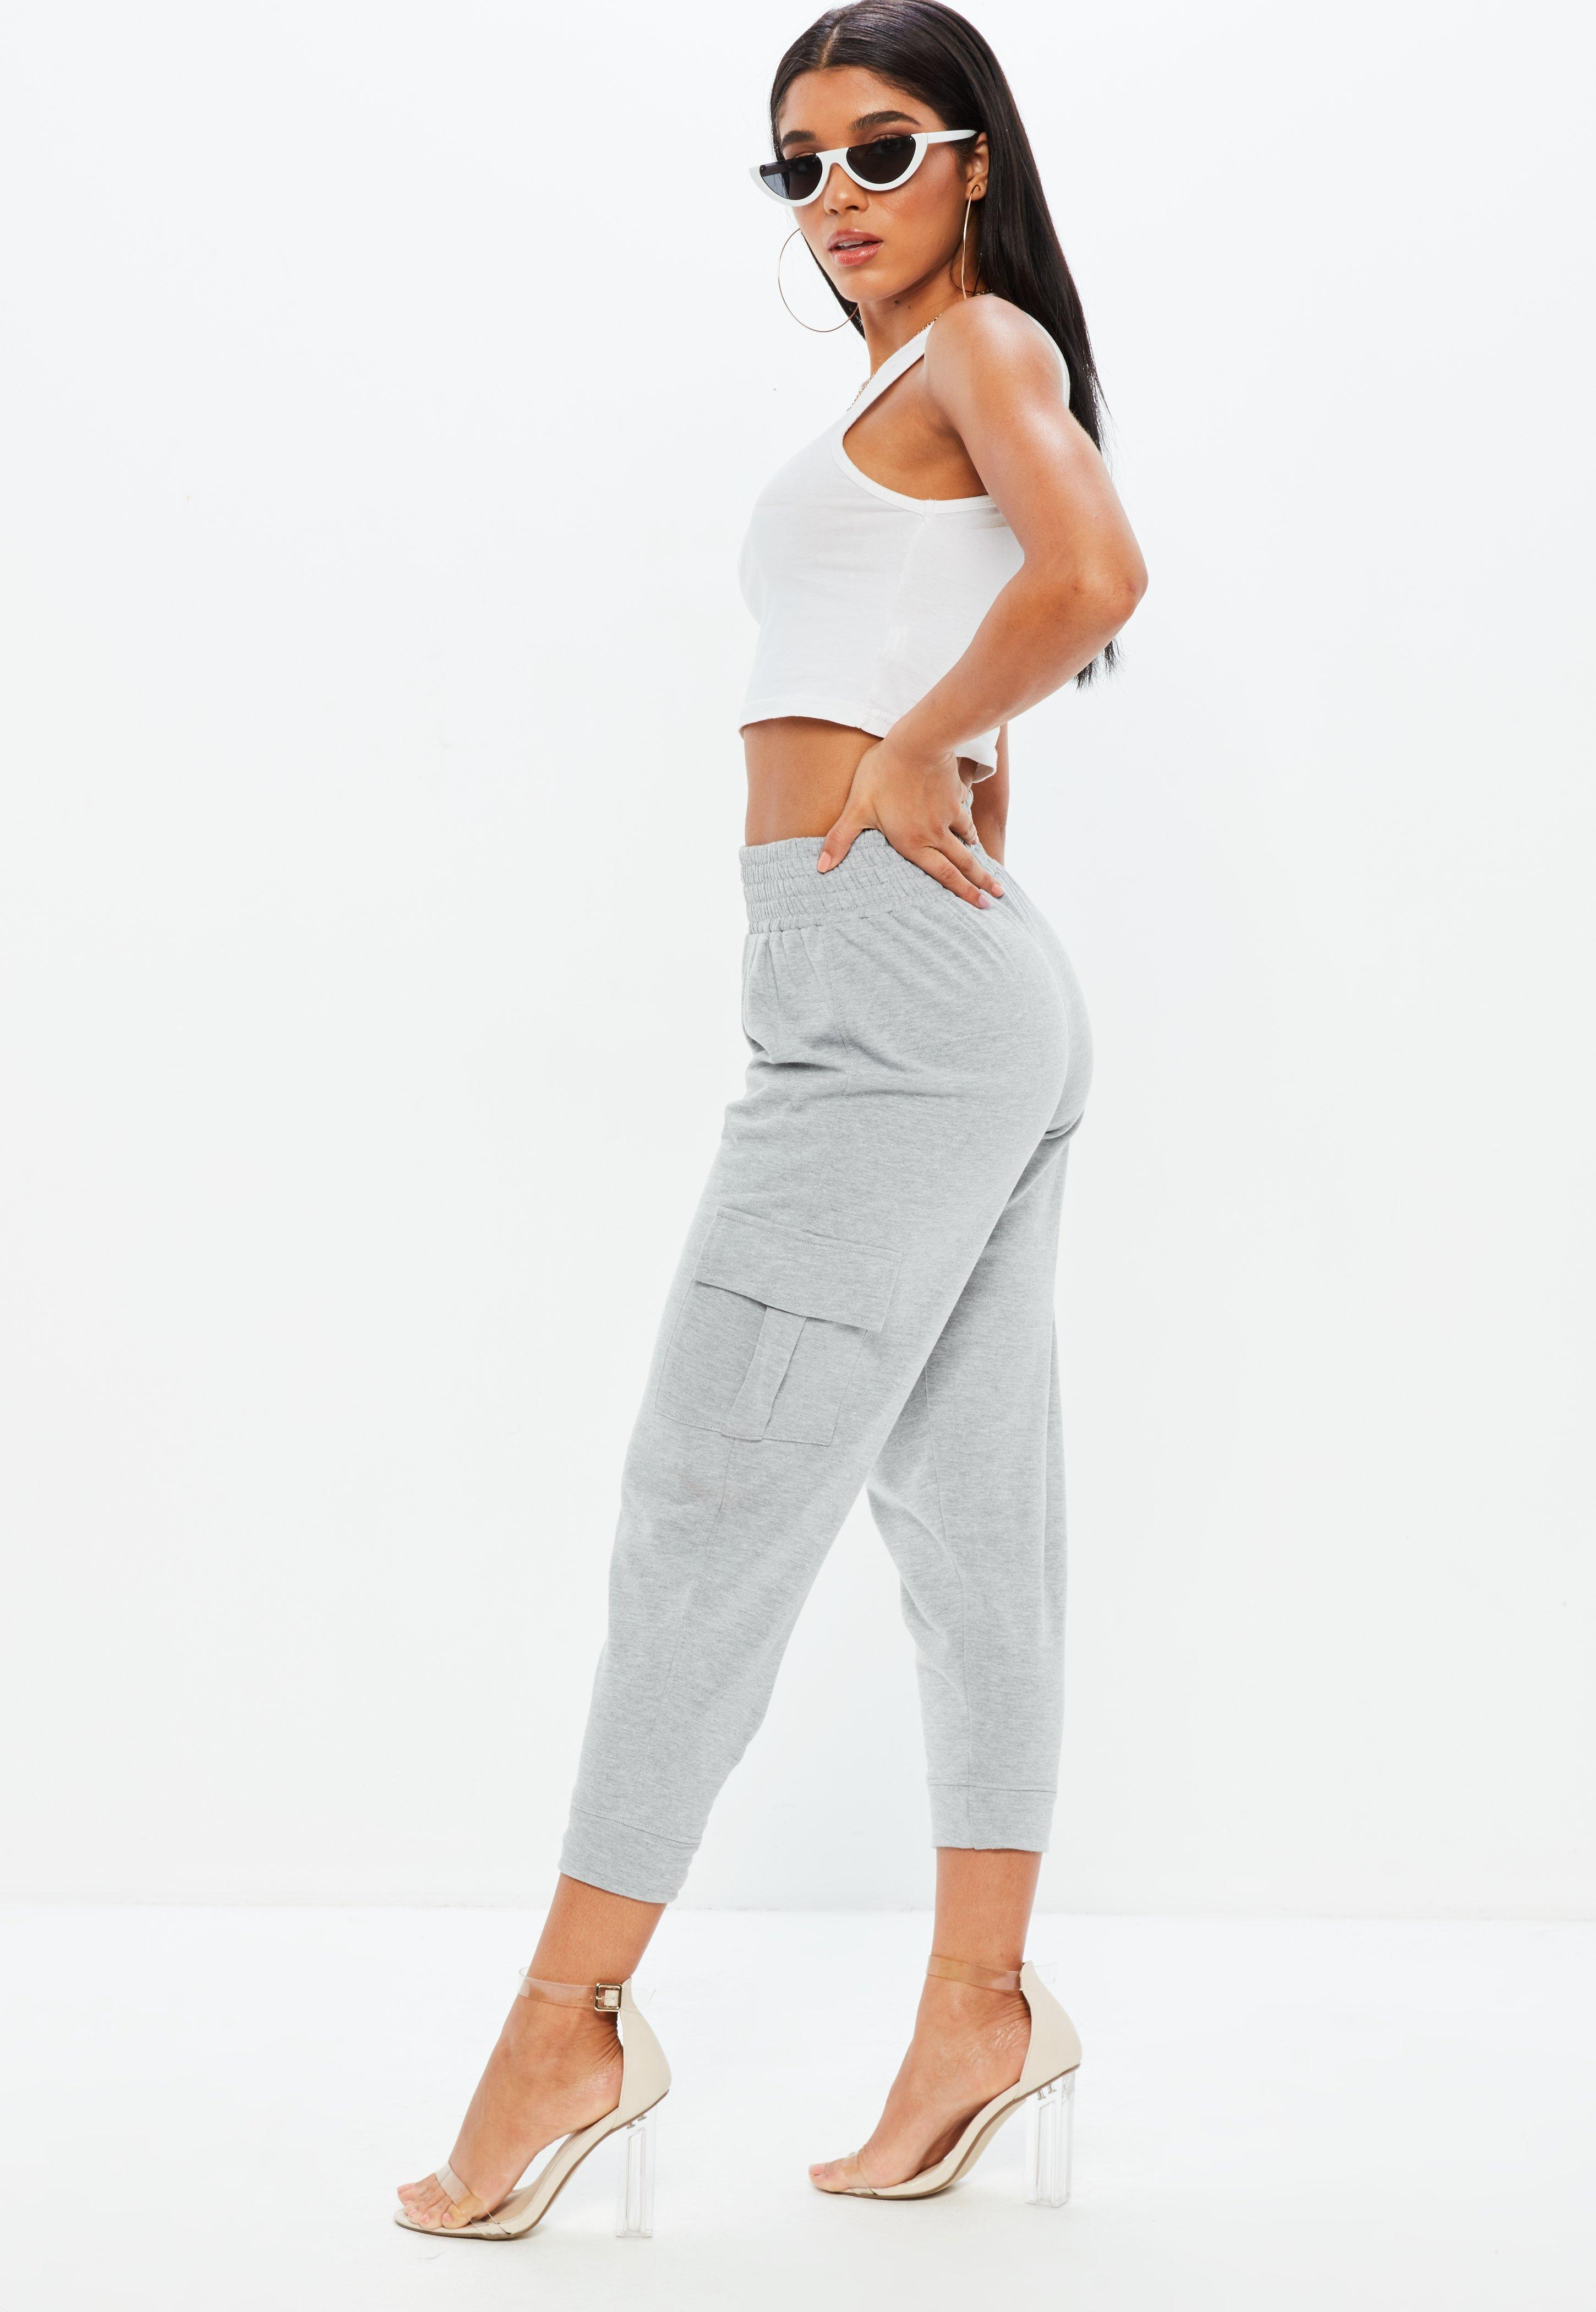 Missguided Petite Premium Loop Back Cargo Joggers Clearance Release Dates Free Shipping Original Shop Offer Sale Online Clearance Collections The Cheapest ROOX1fbFjI